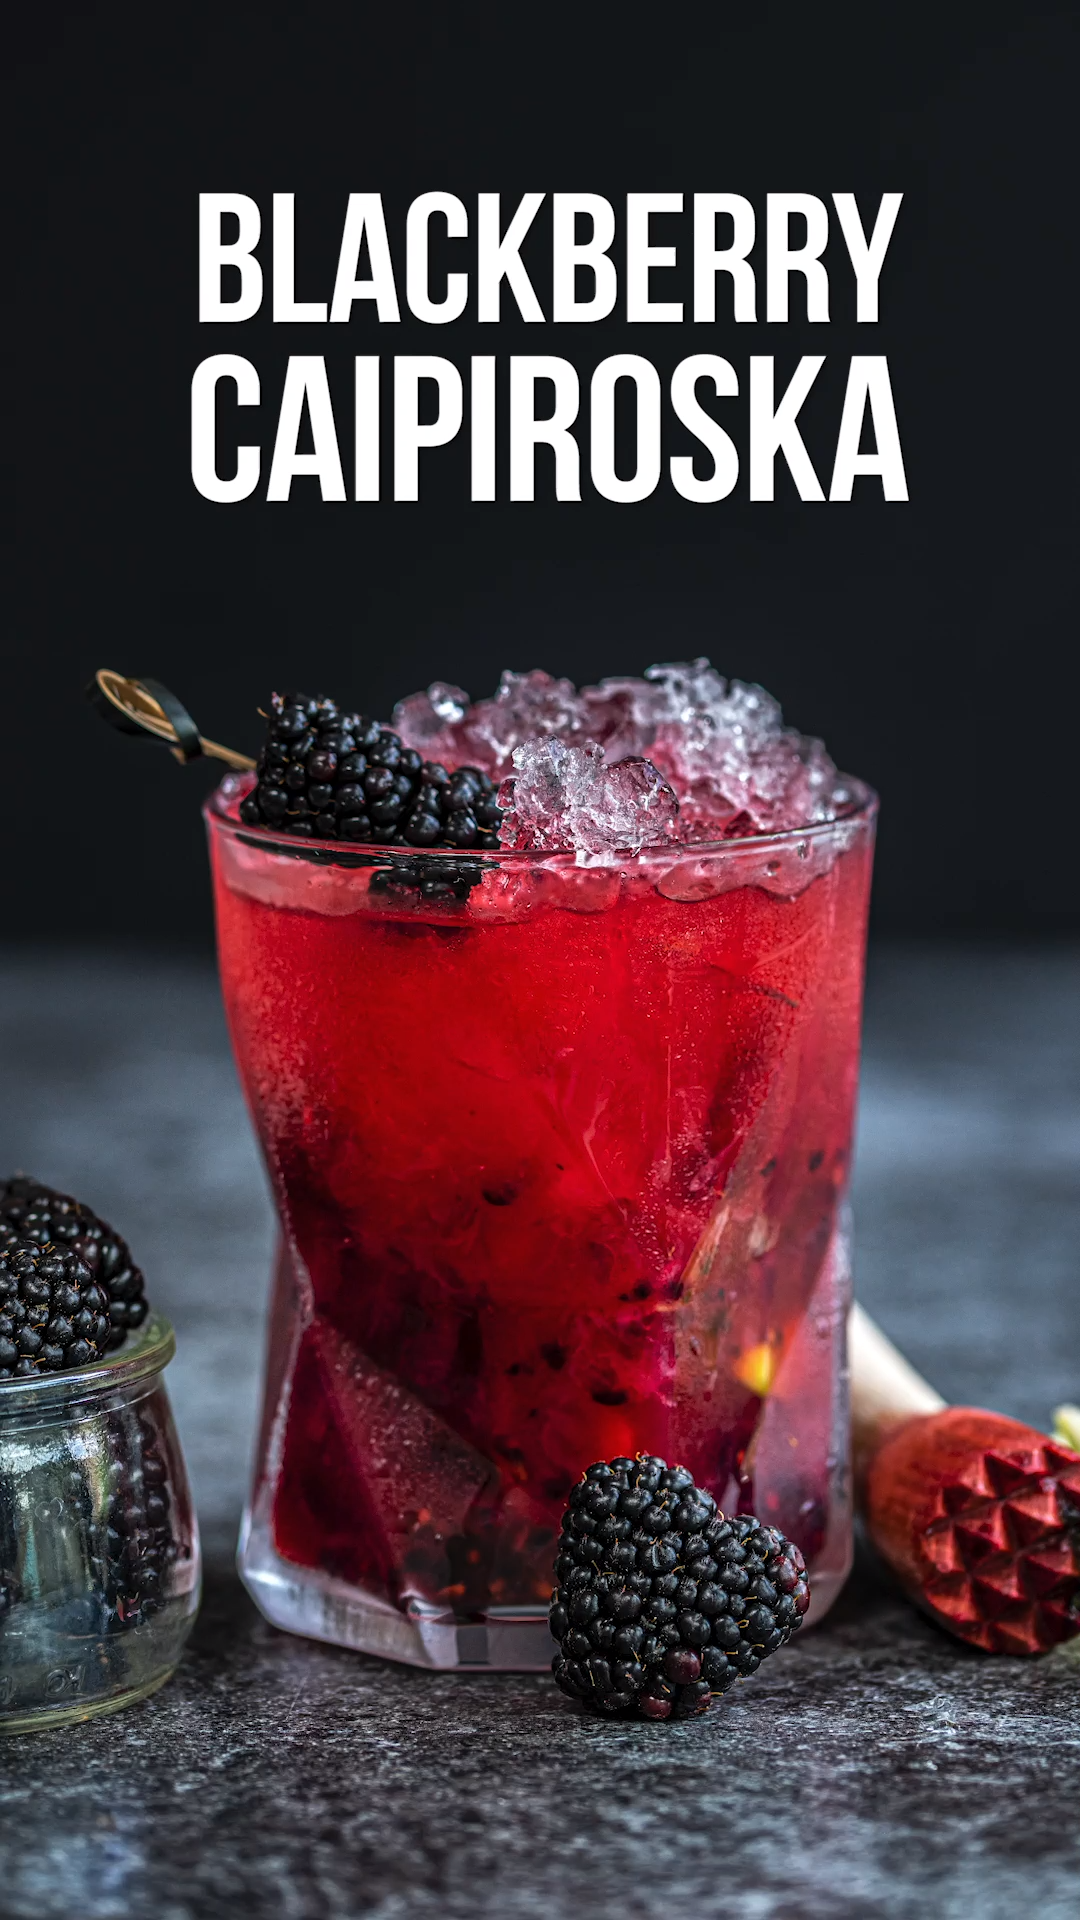 Blackberry Caipiroska